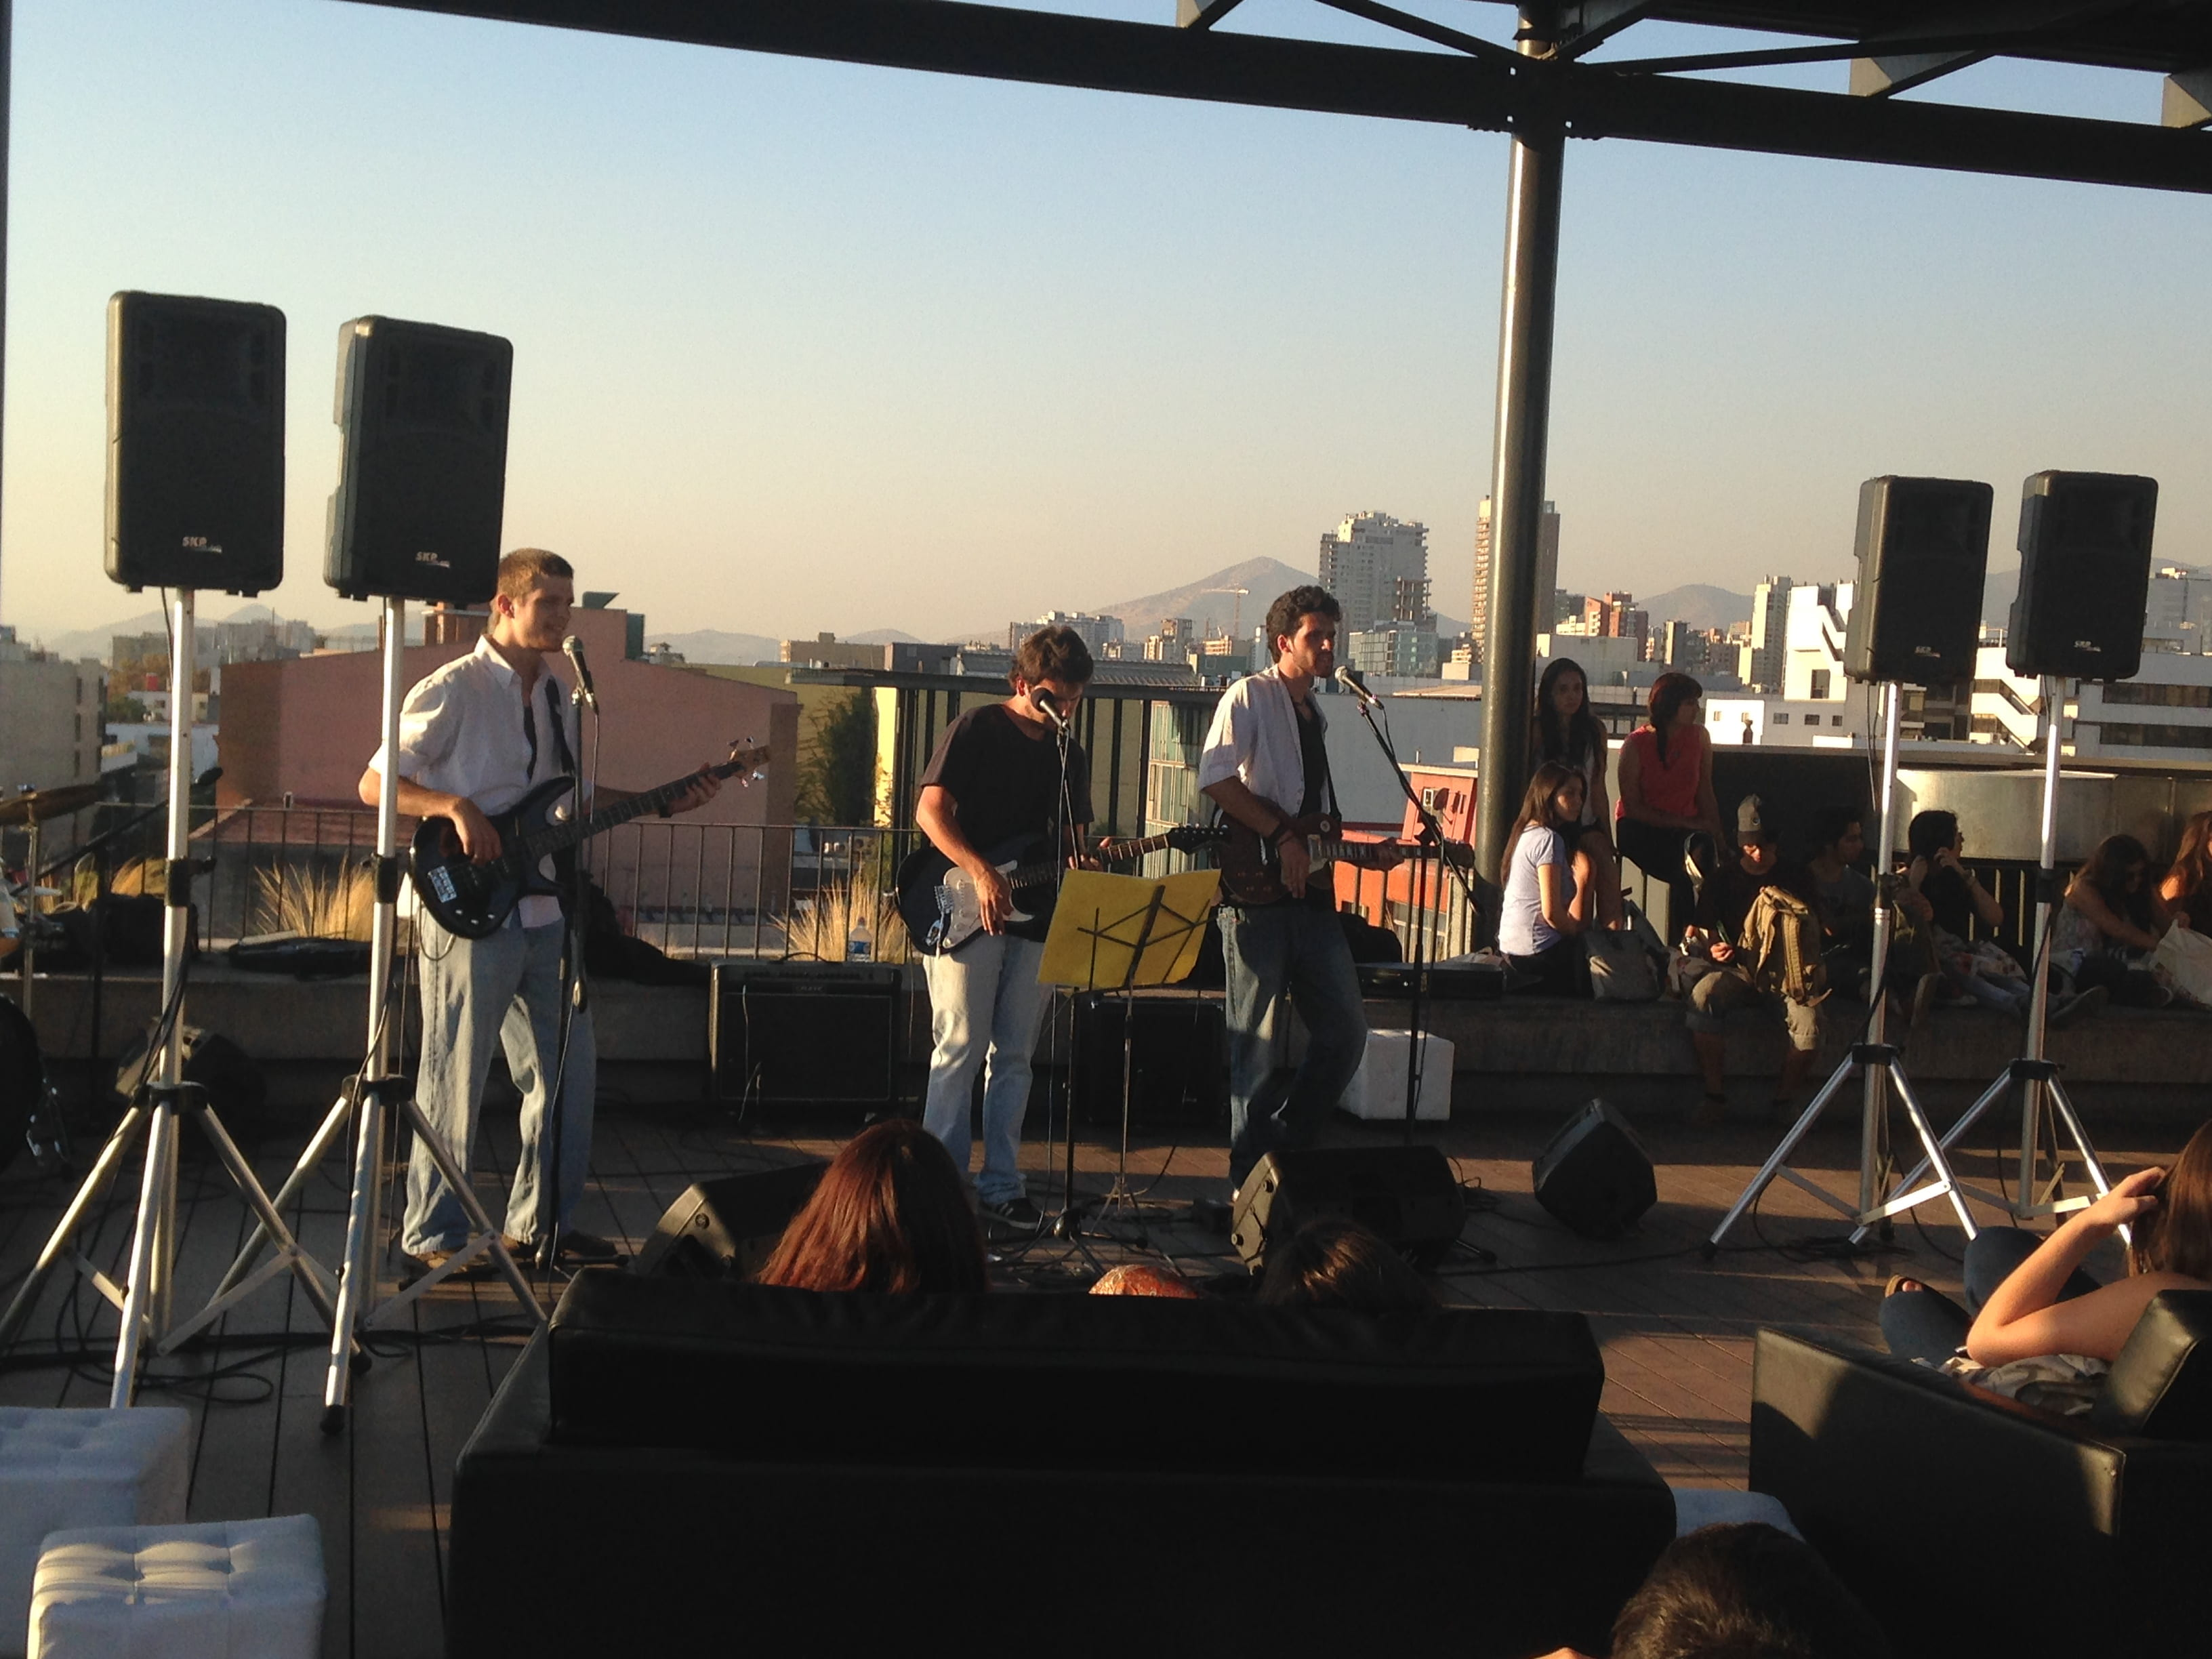 Student band performing on the rooftop.